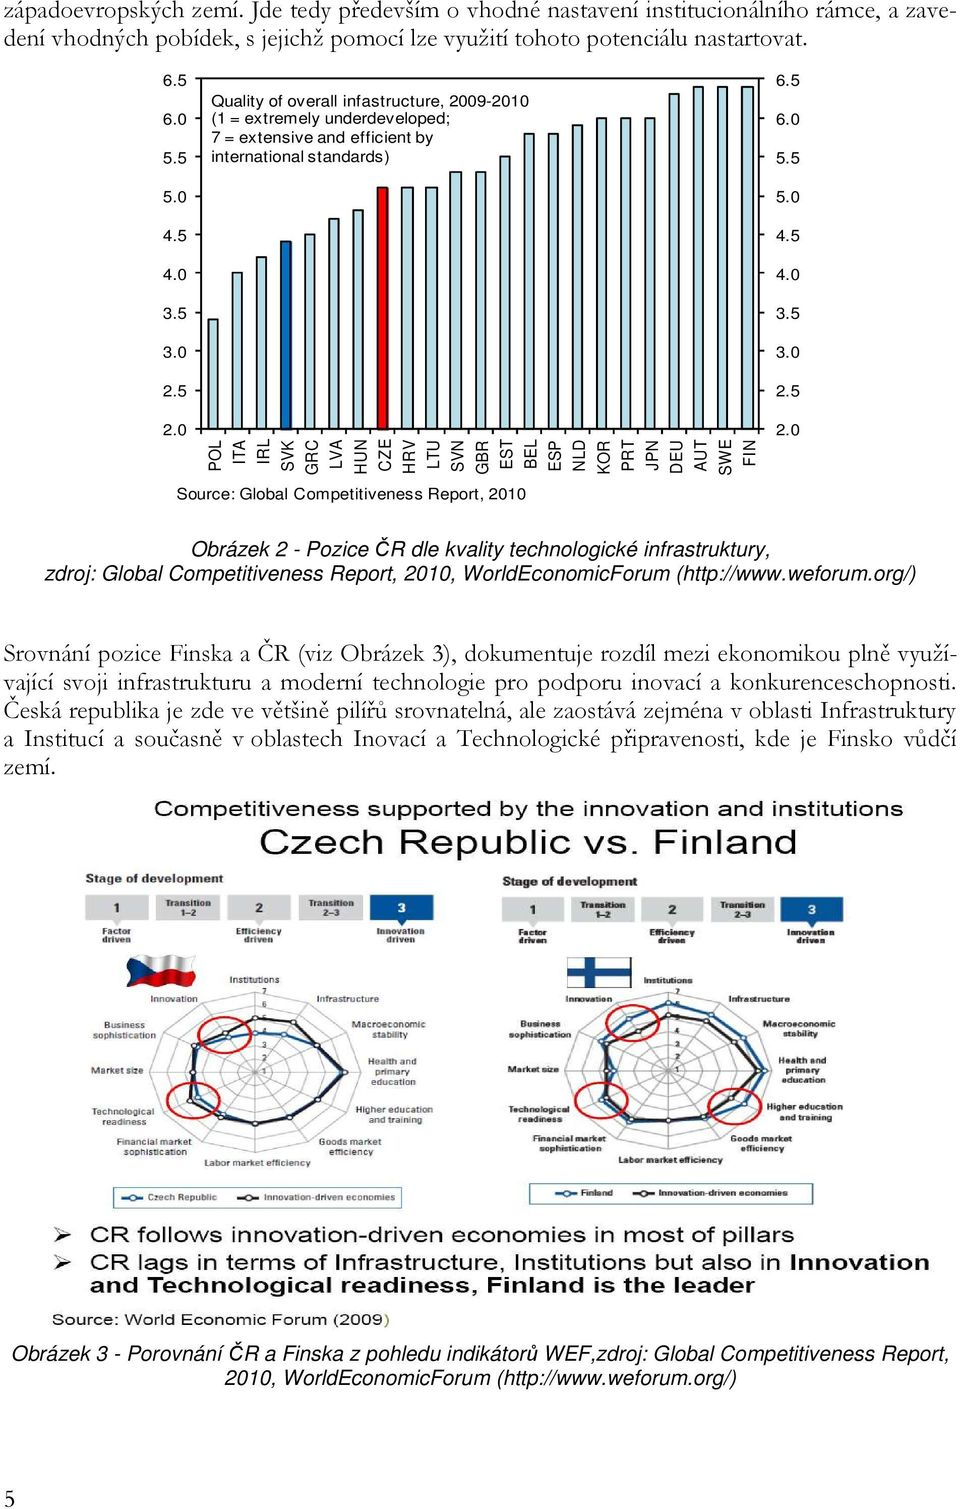 0 Quality of overall infastructure, 2009-2010 (1 = extremely underdeveloped; 7 = extensive and efficient by international standards) POL ITA IRL SVK GRC LVA HUN CZE HRV LTU SVN GBR EST BEL ESP NLD